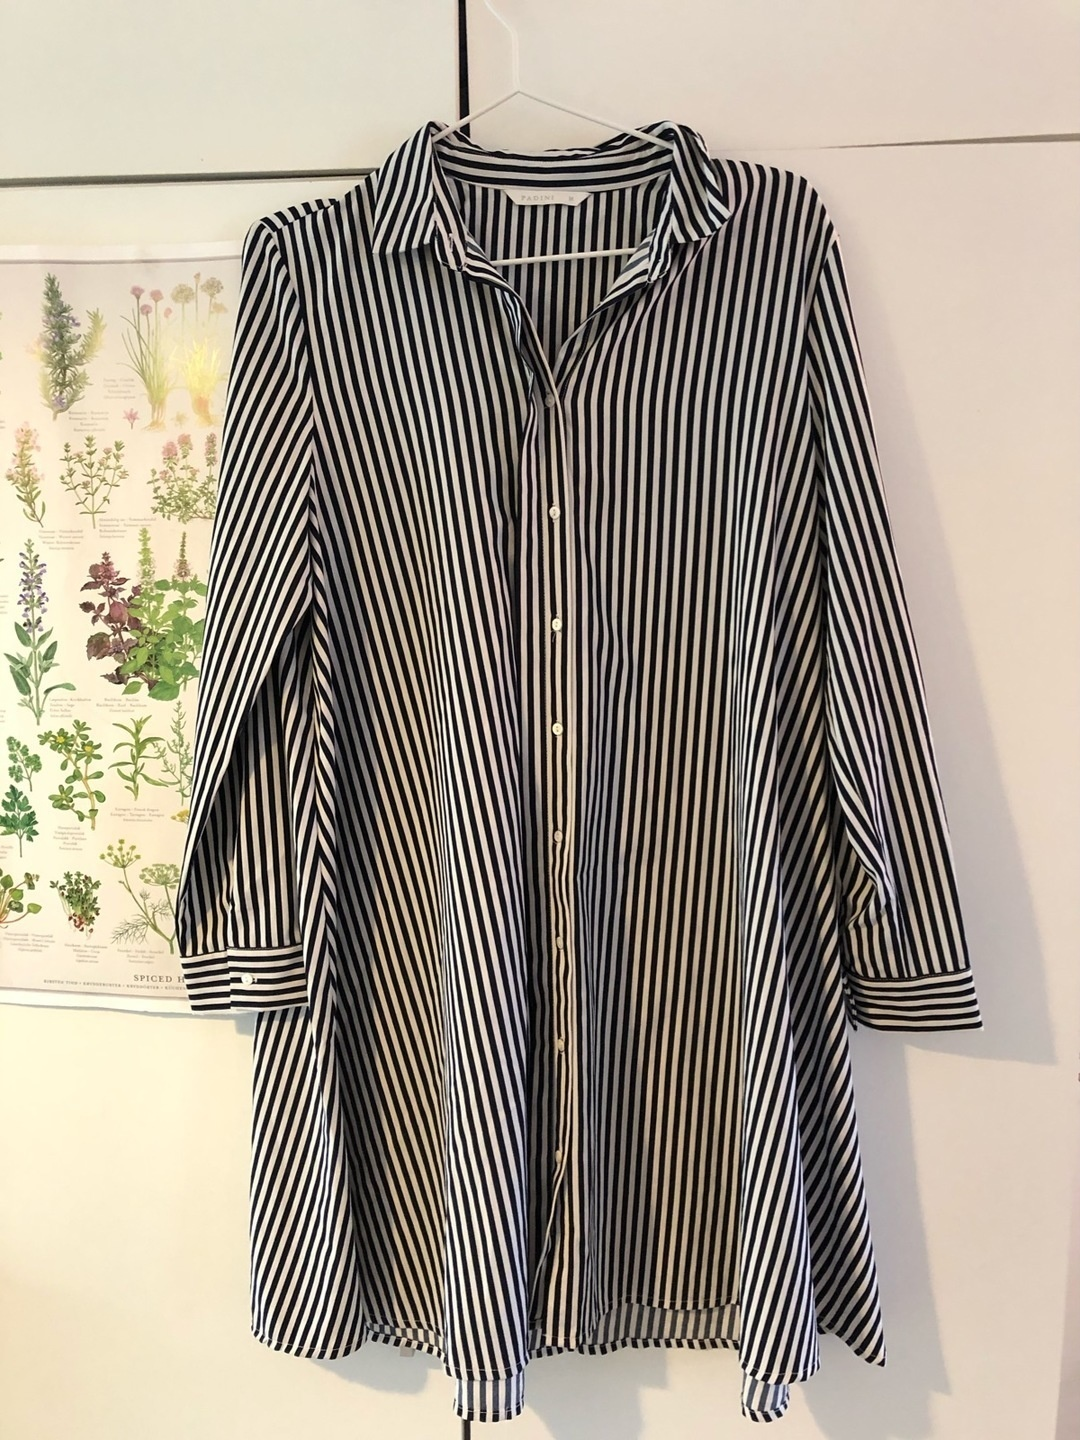 Women's dresses - PADINI AUTHENTICS photo 1